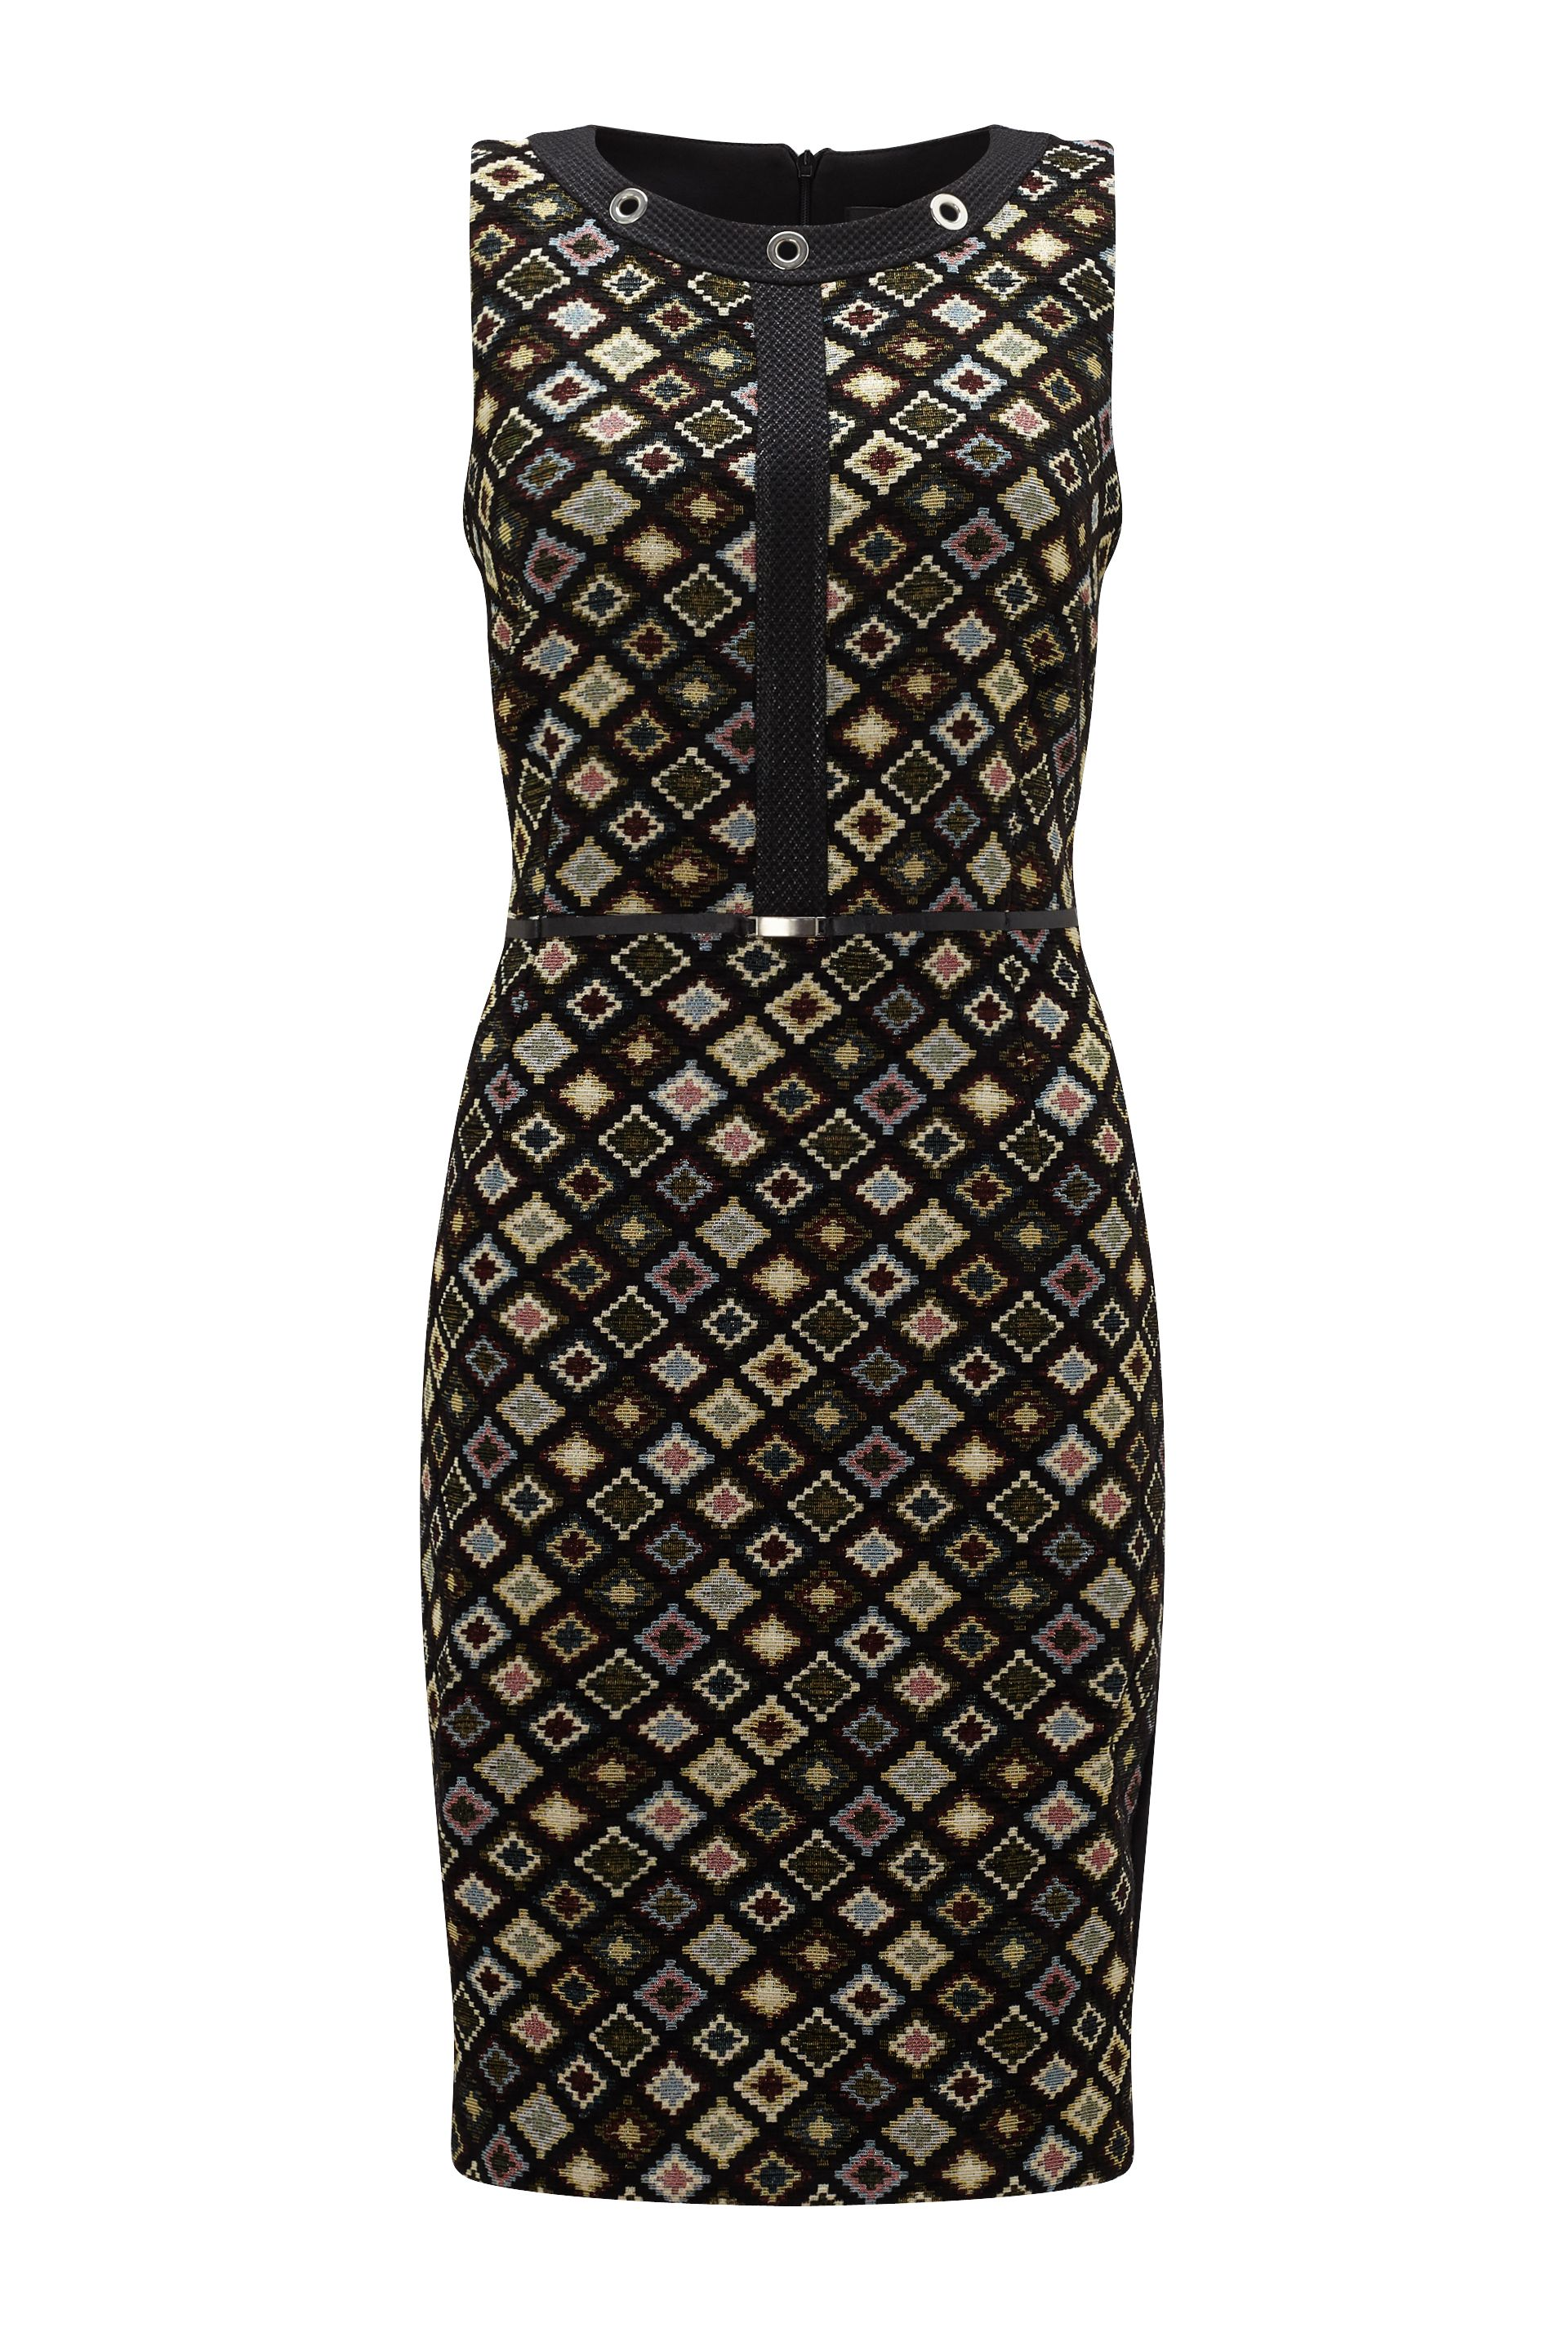 James Lakeland Jacquard Pattern Dress, Black